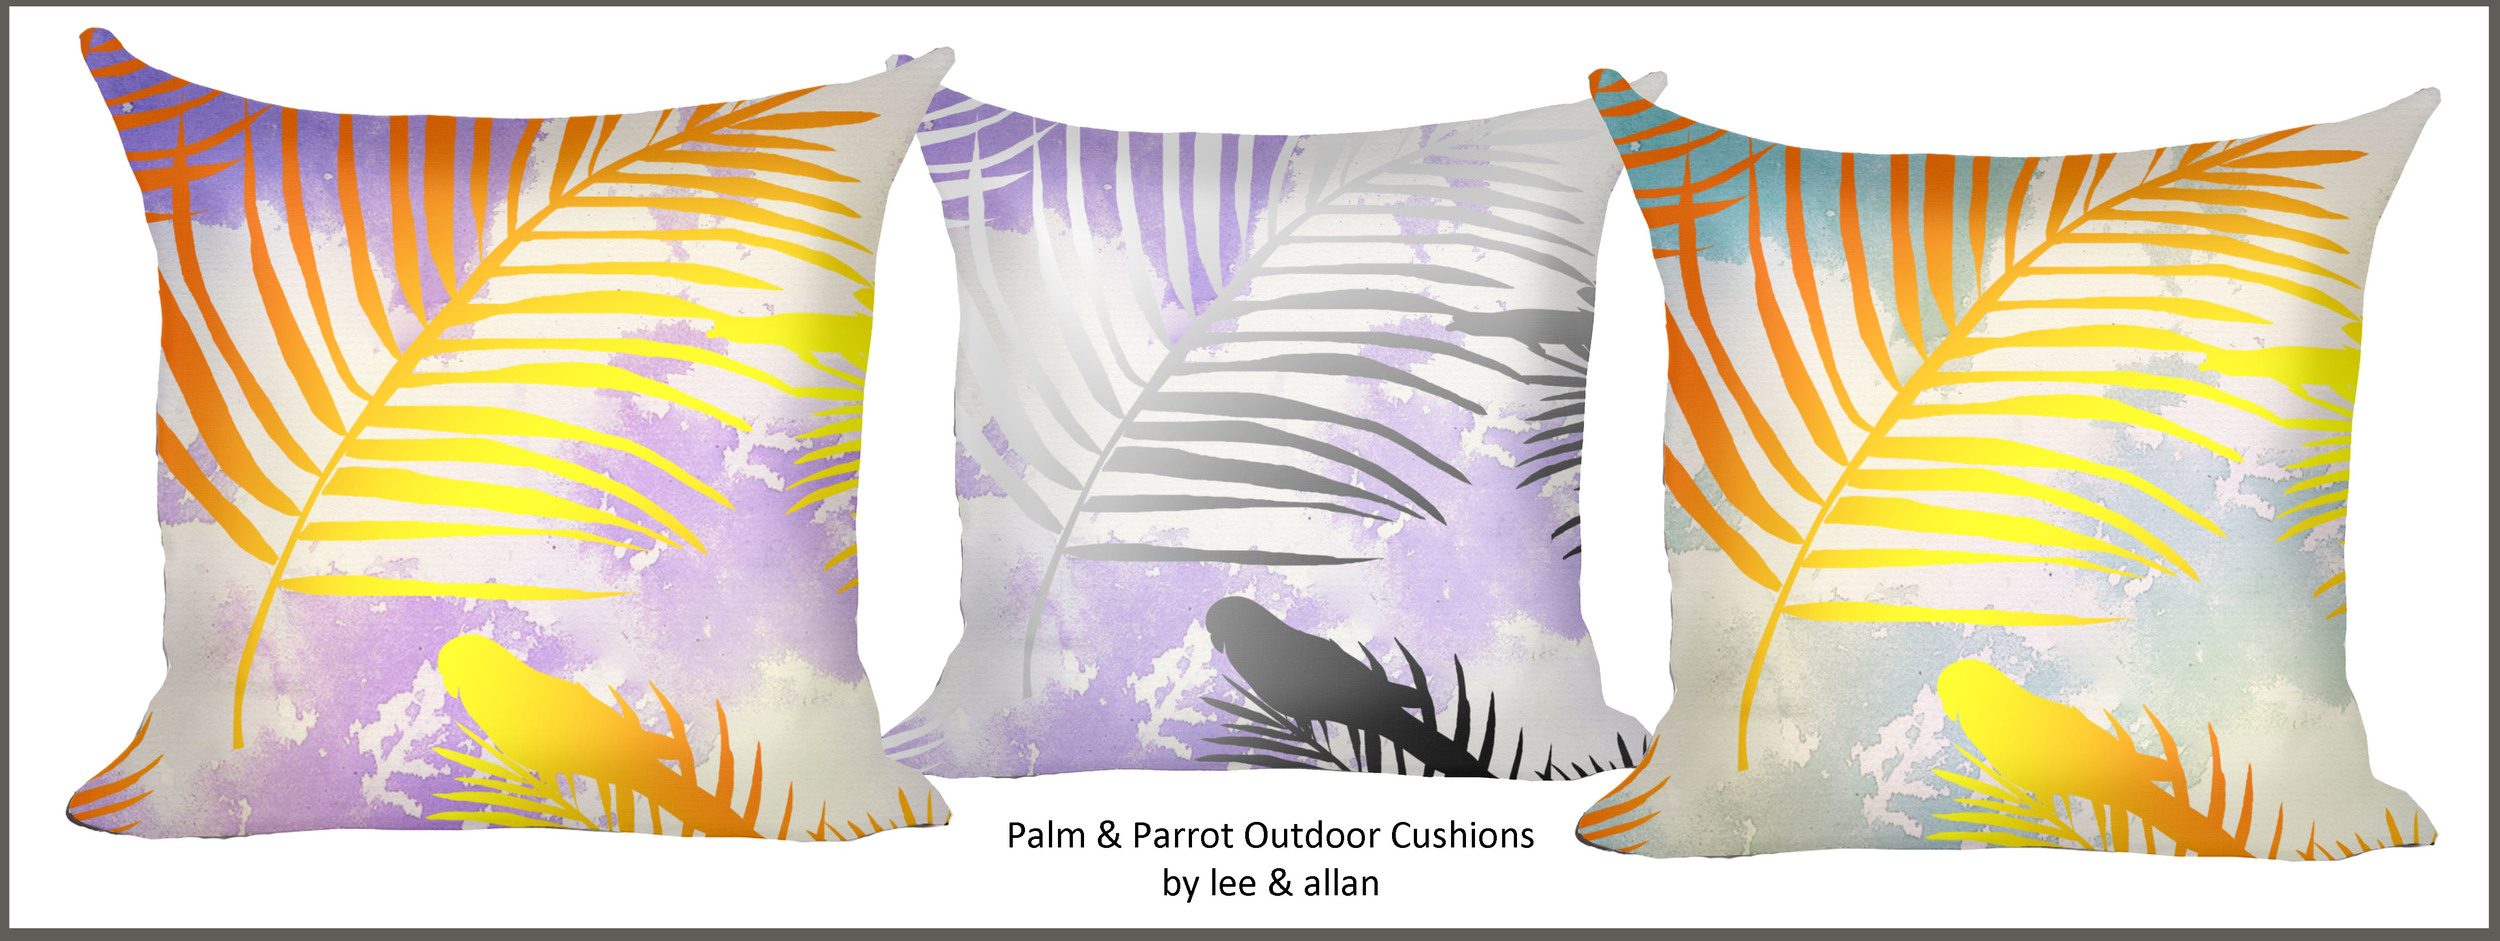 Outdoor Abstract Cushions.jpg